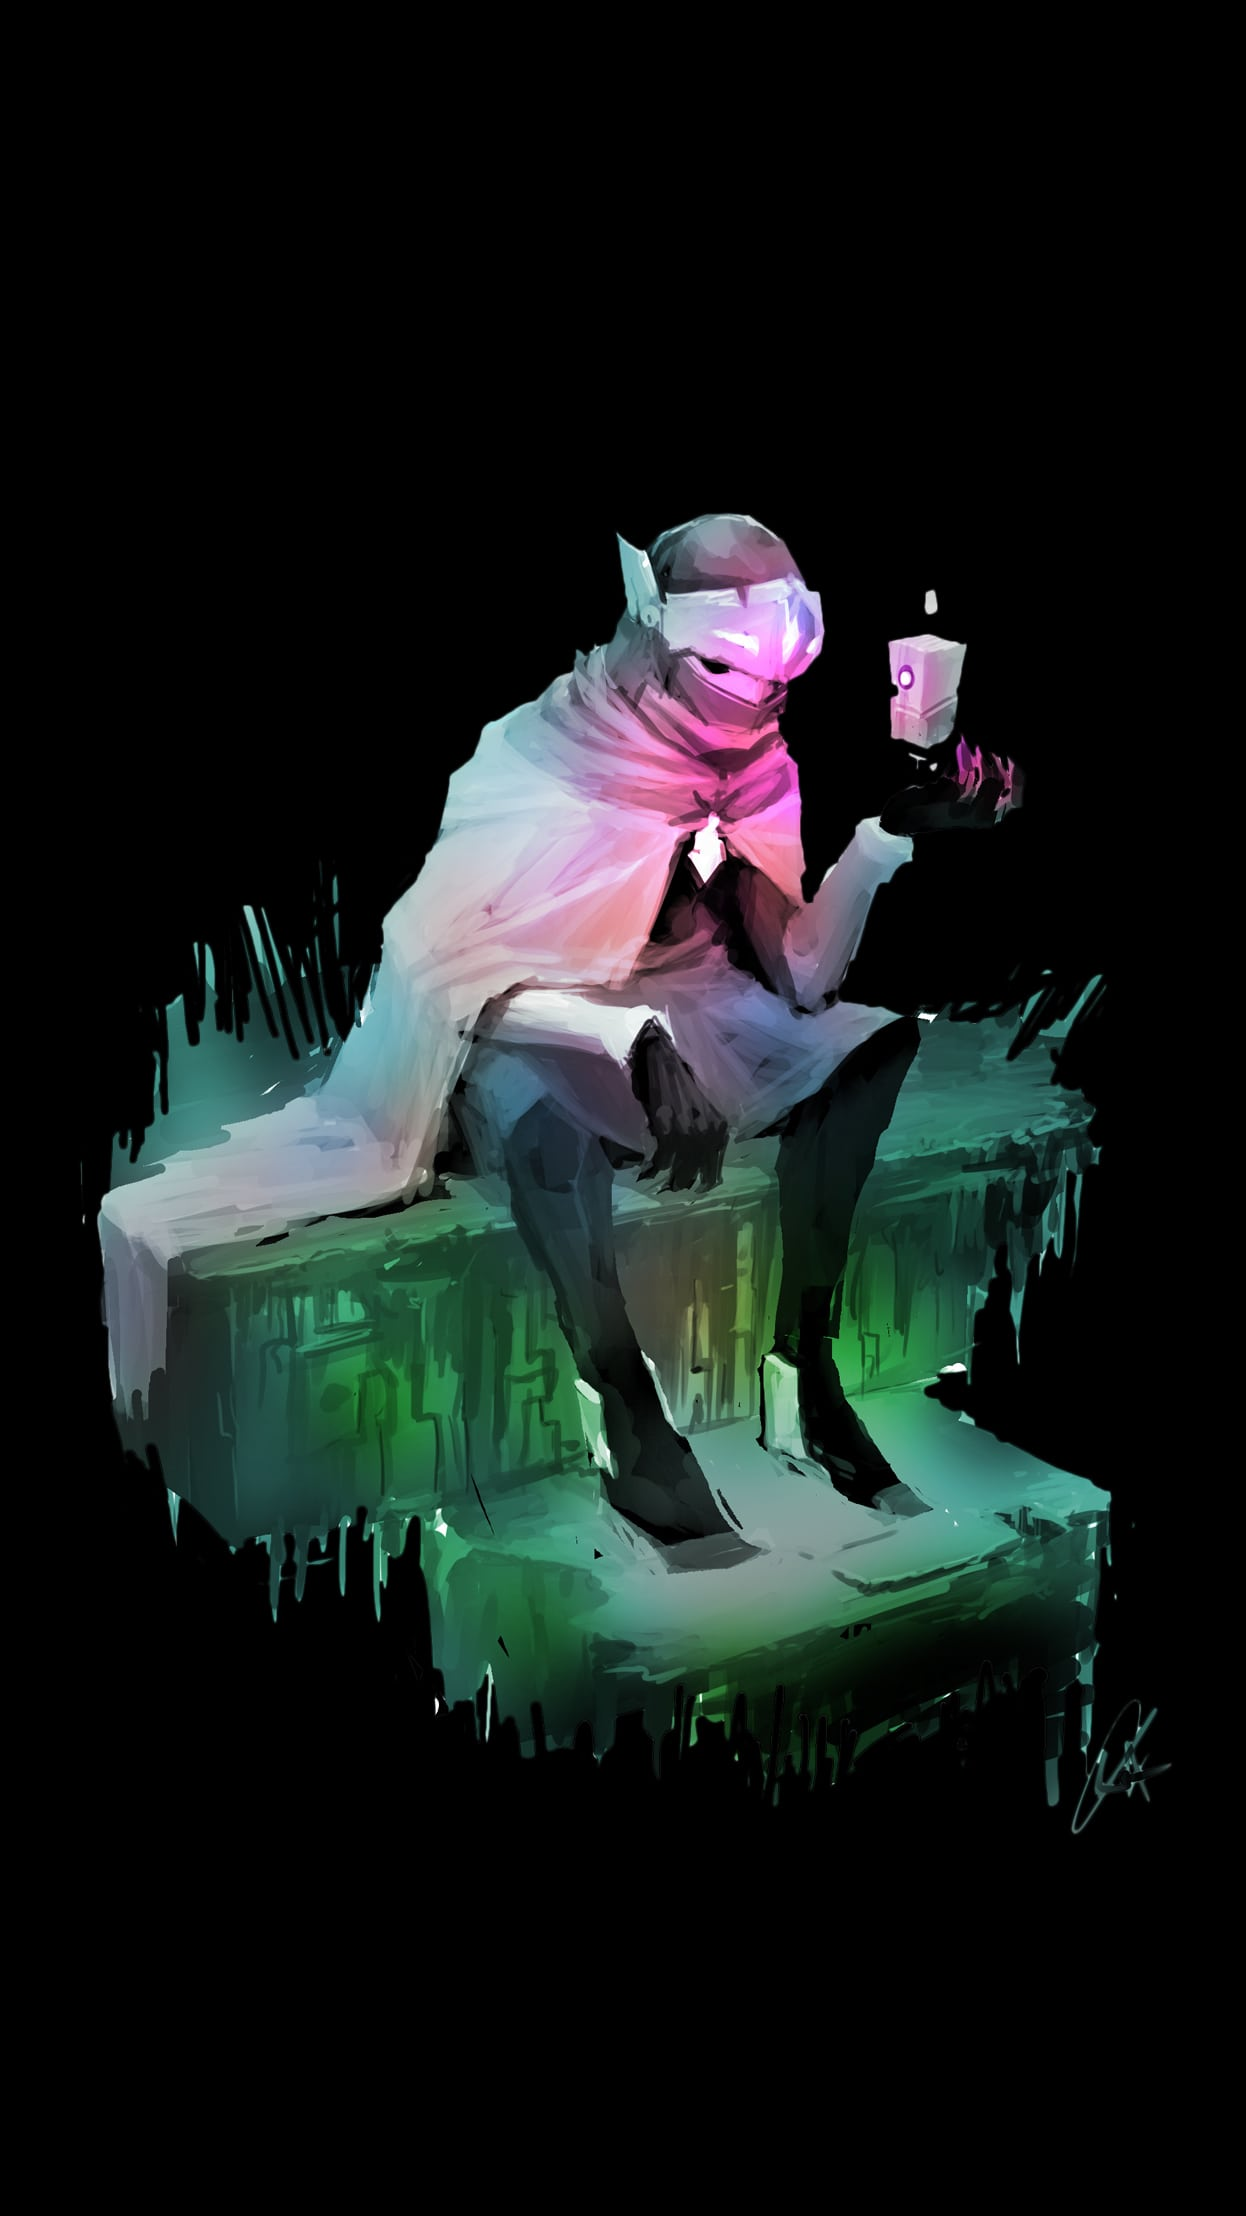 Hyper Light Drifter For mobile